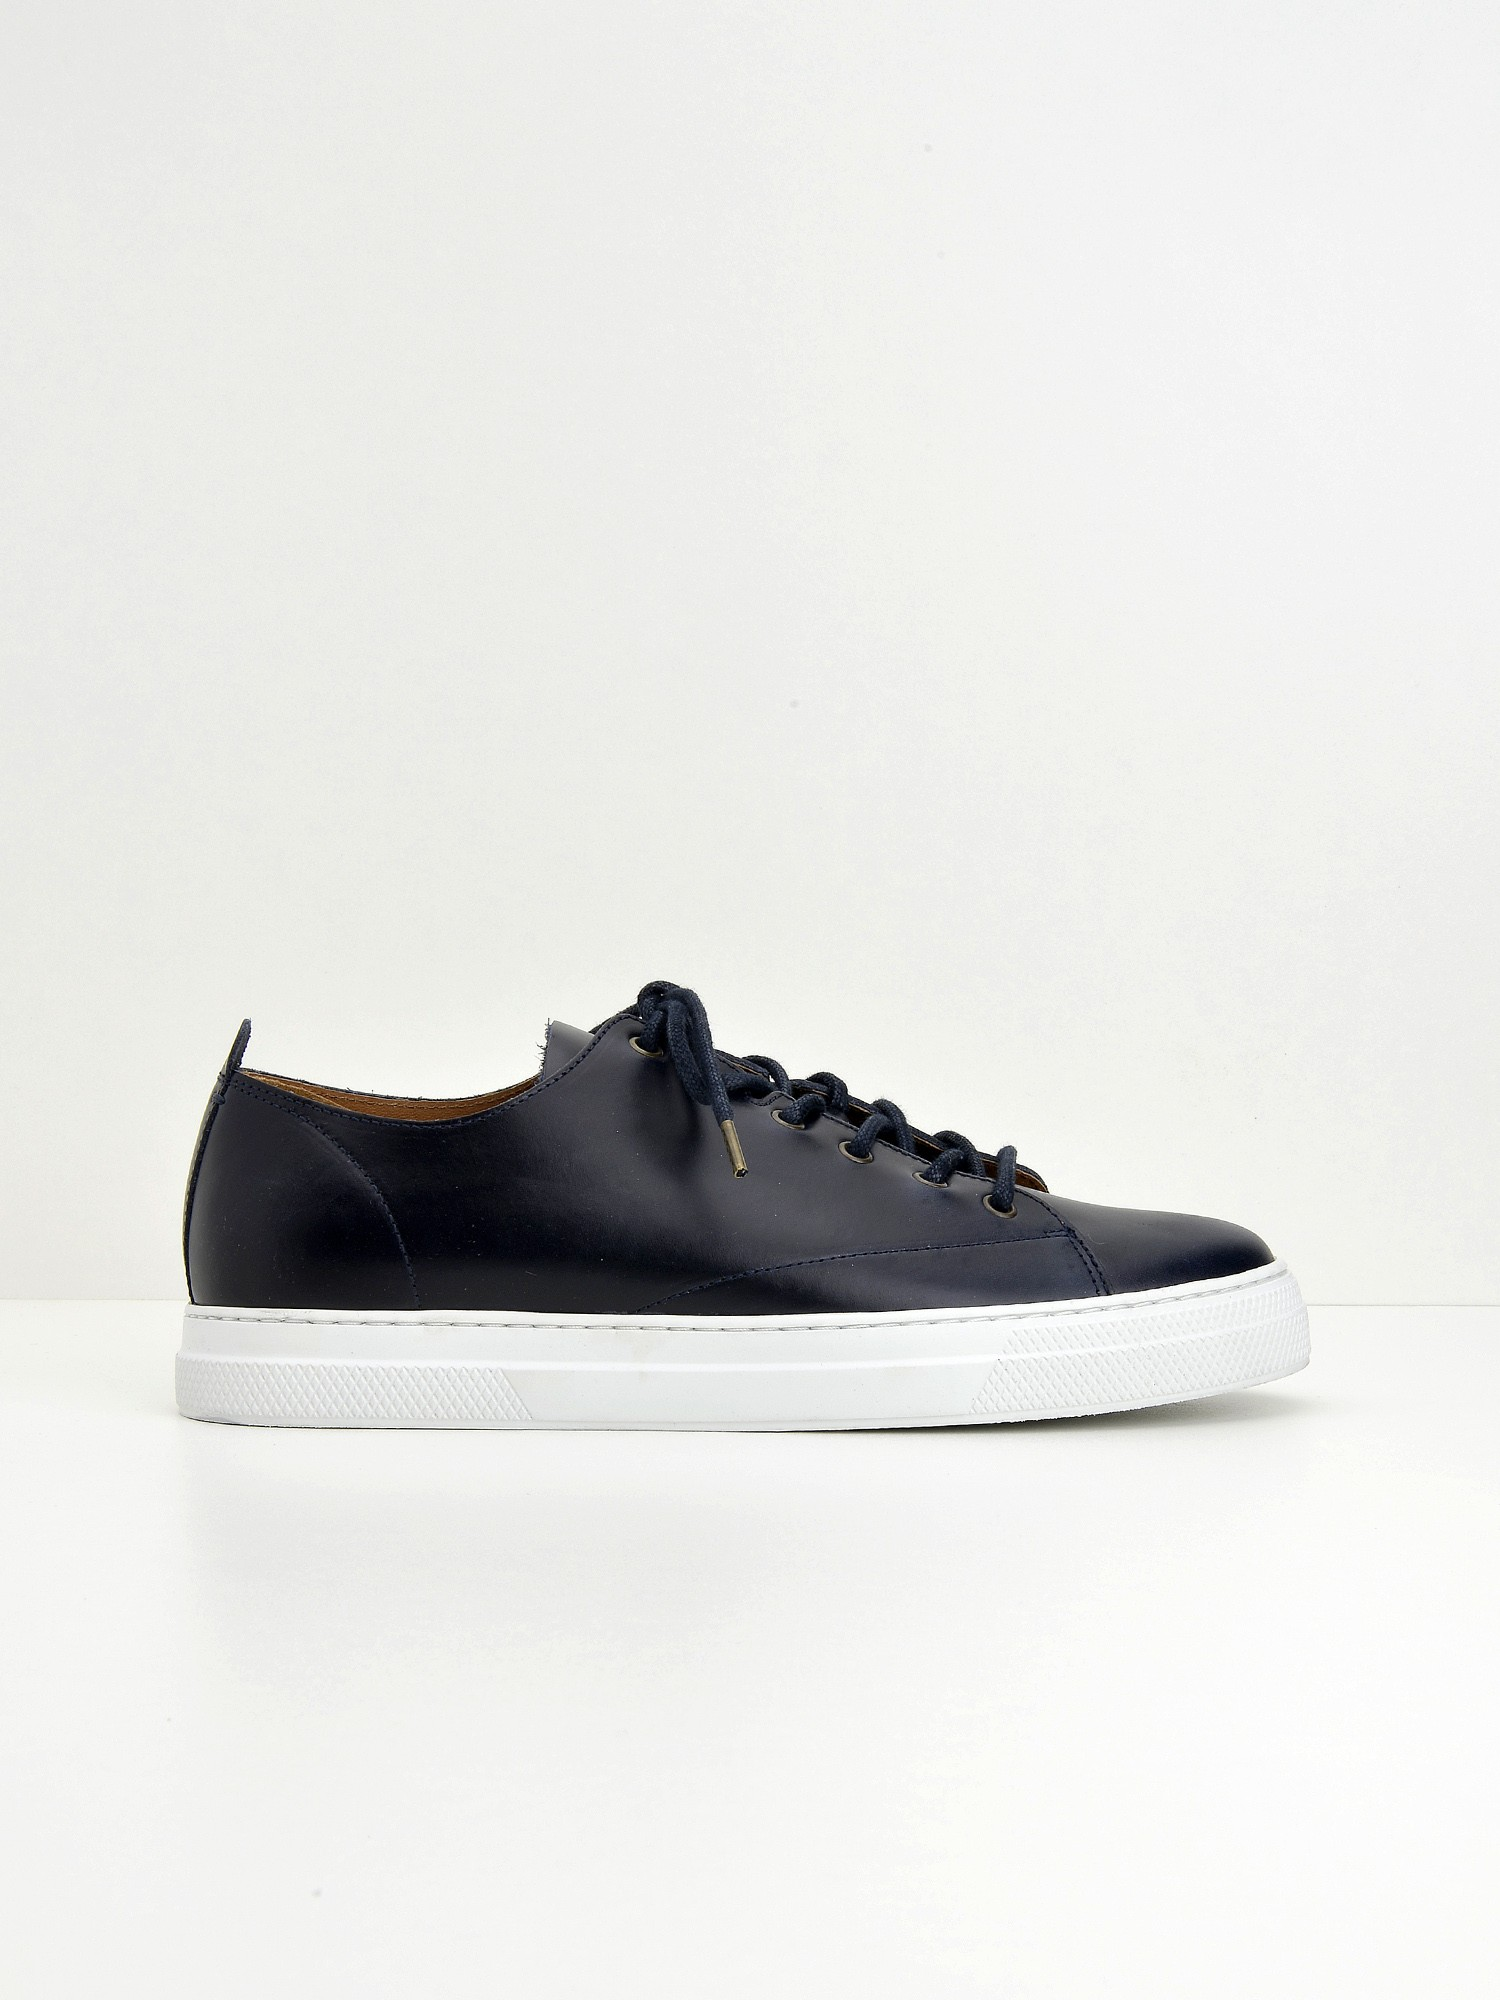 Marques Chaussure homme Schmoove homme Spark Soft Octopus Deepsea